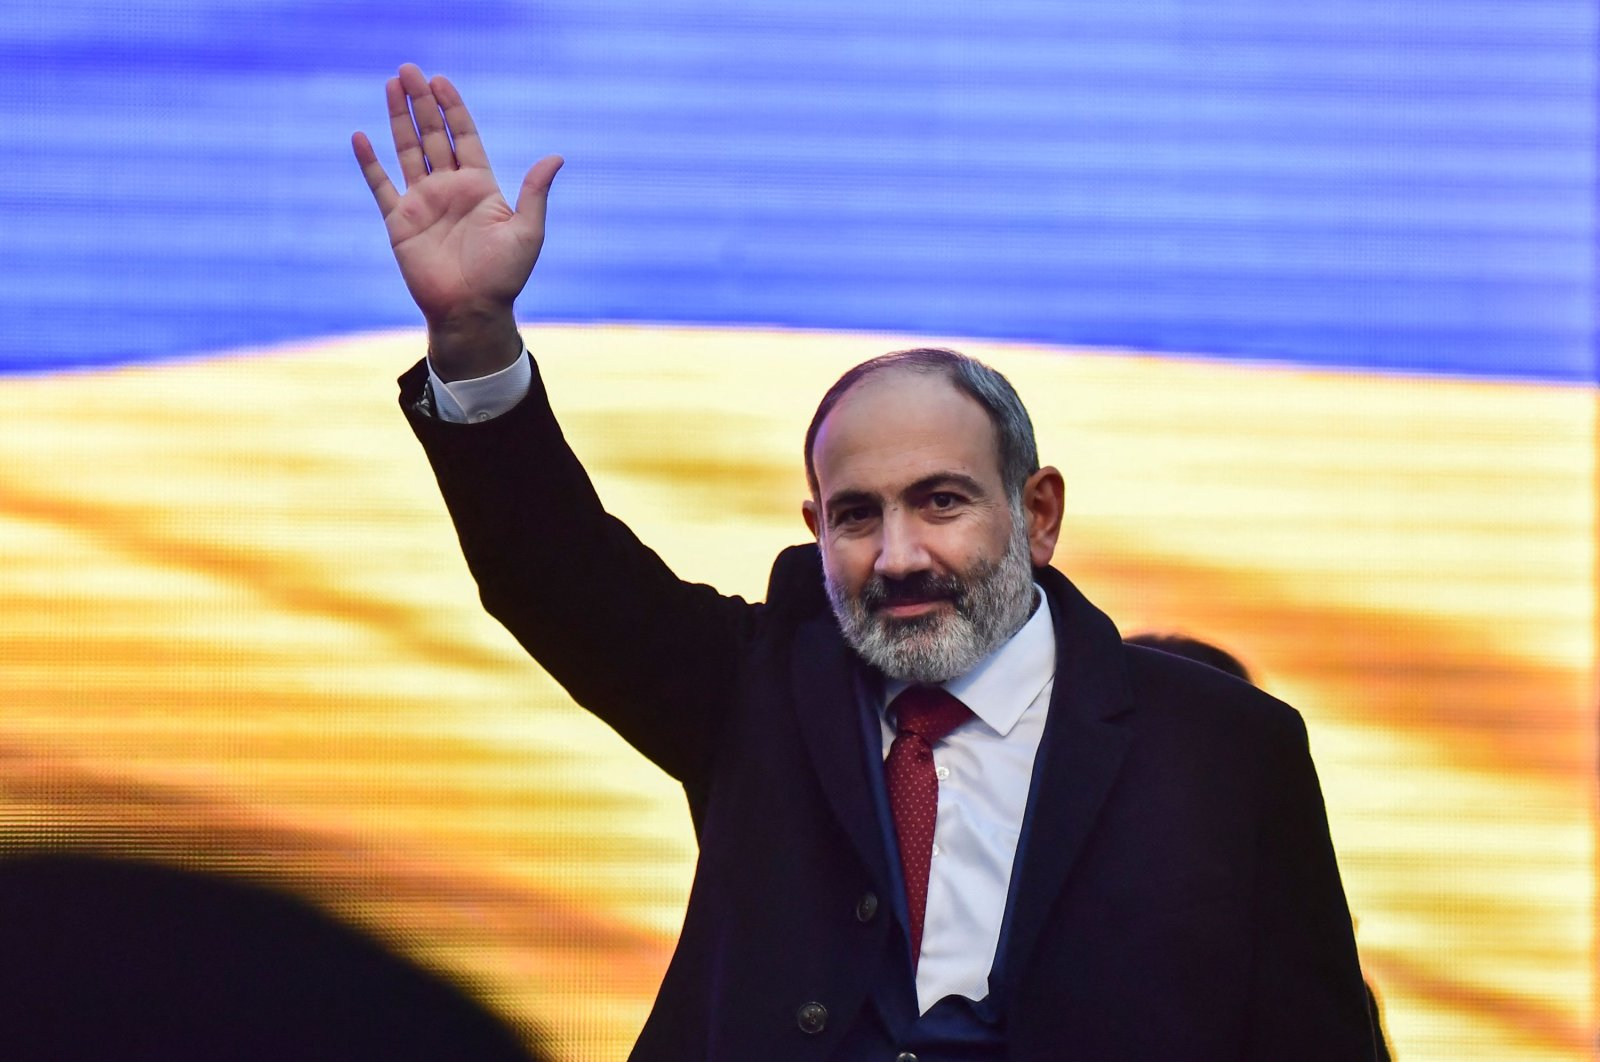 Armenian Prime Minister Nikol Pashinian greets his supporters gathered at Republic Square in downtown Yerevan, Armenia, March 1, 2021. (AFP Photo)